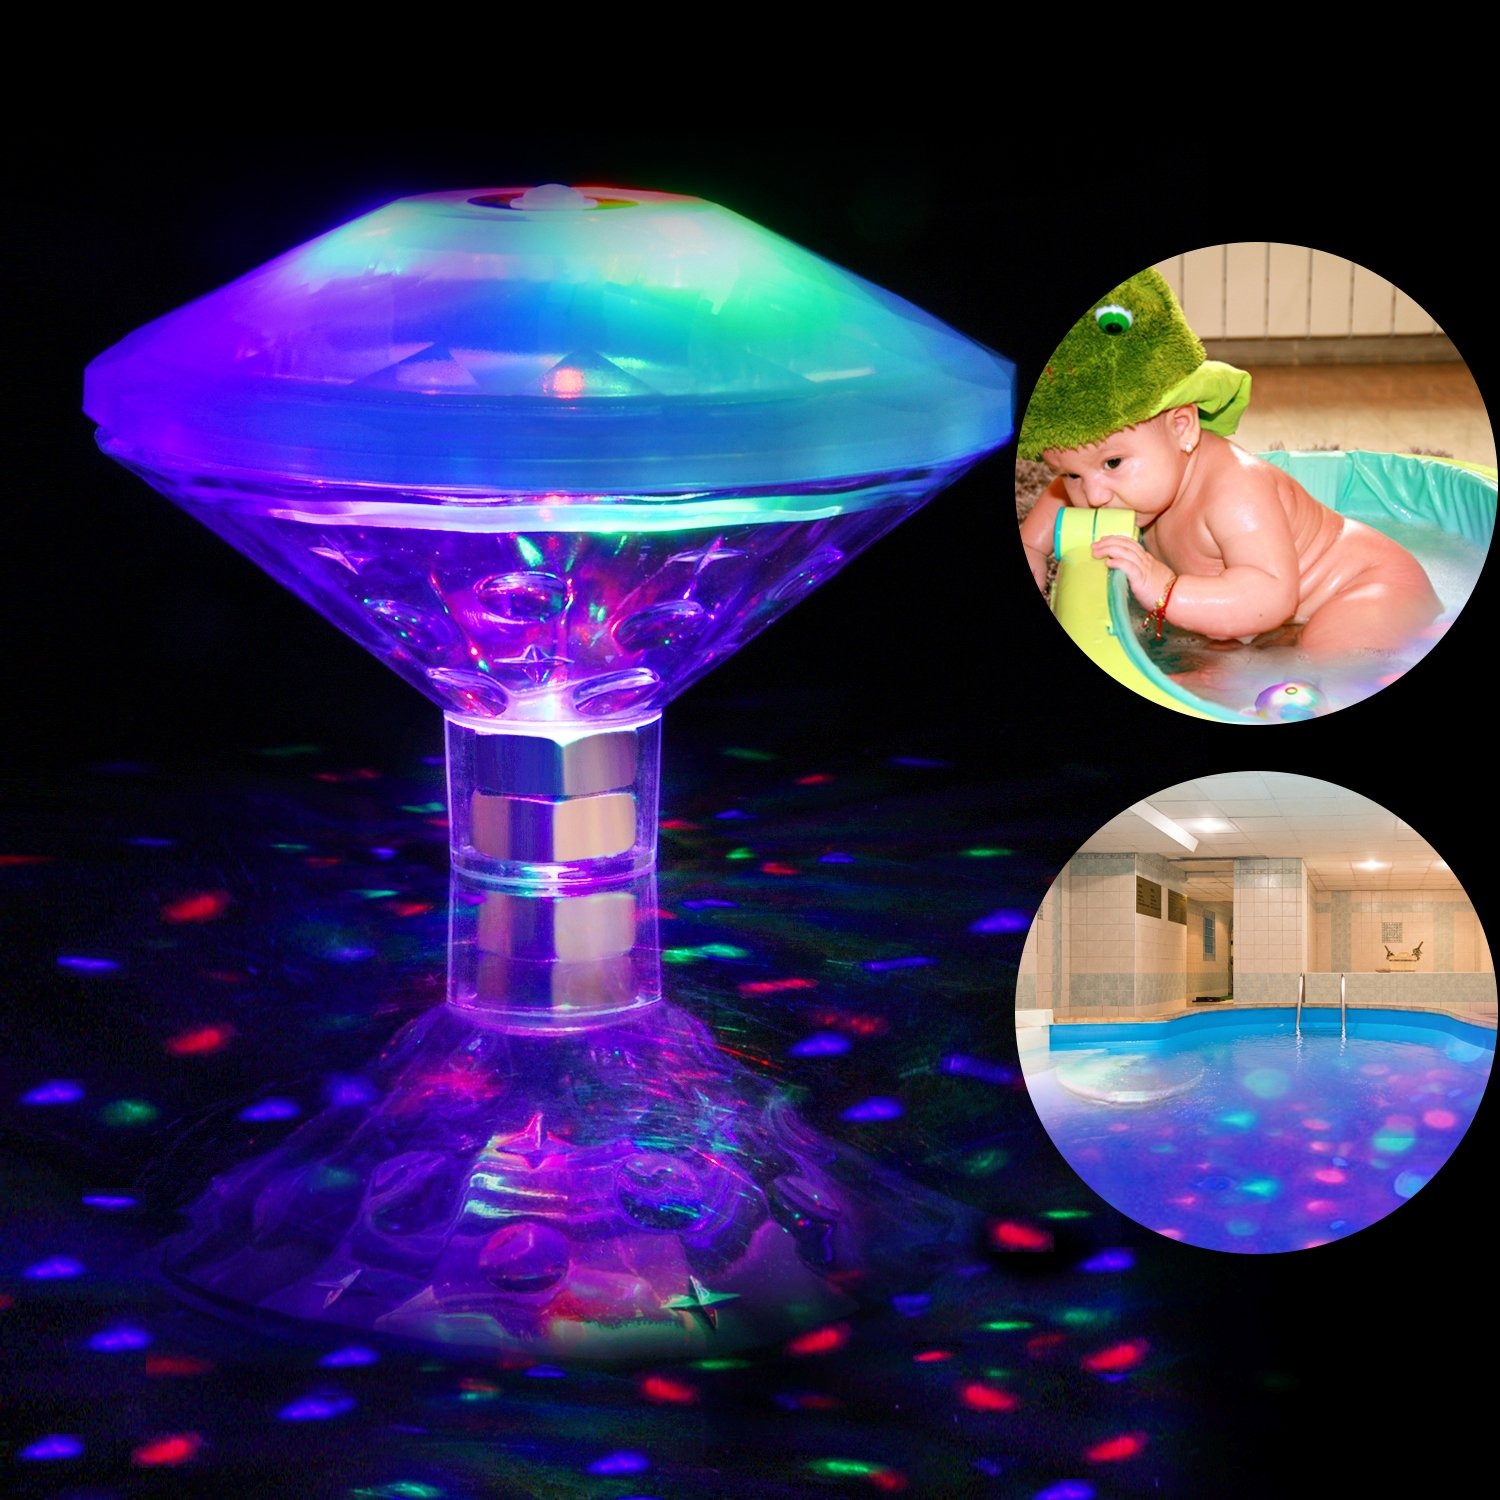 AOSTAR Waterproof Swimming Pool Lights, RGB, 7 Modes, Battery Operated Floating Pool Light Bulb for Pool, Pond, Hot Tub or Party Decorations by AOSTAR